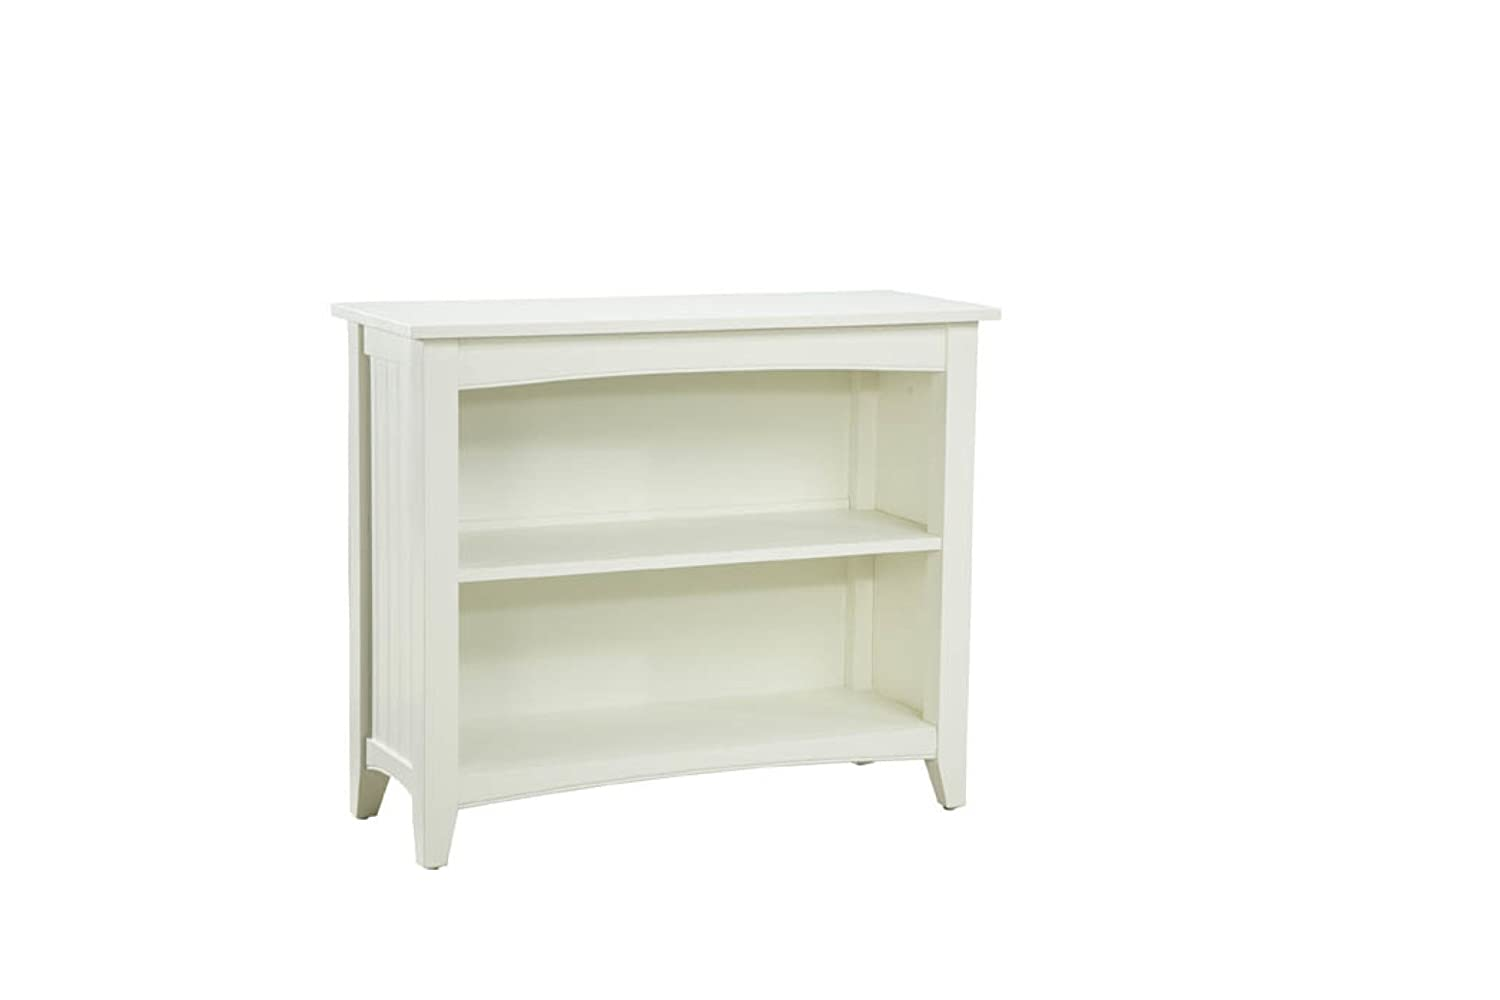 Alaterre ASCA07IV Shaker Cottage Two Shelf Bookcase - Ivory